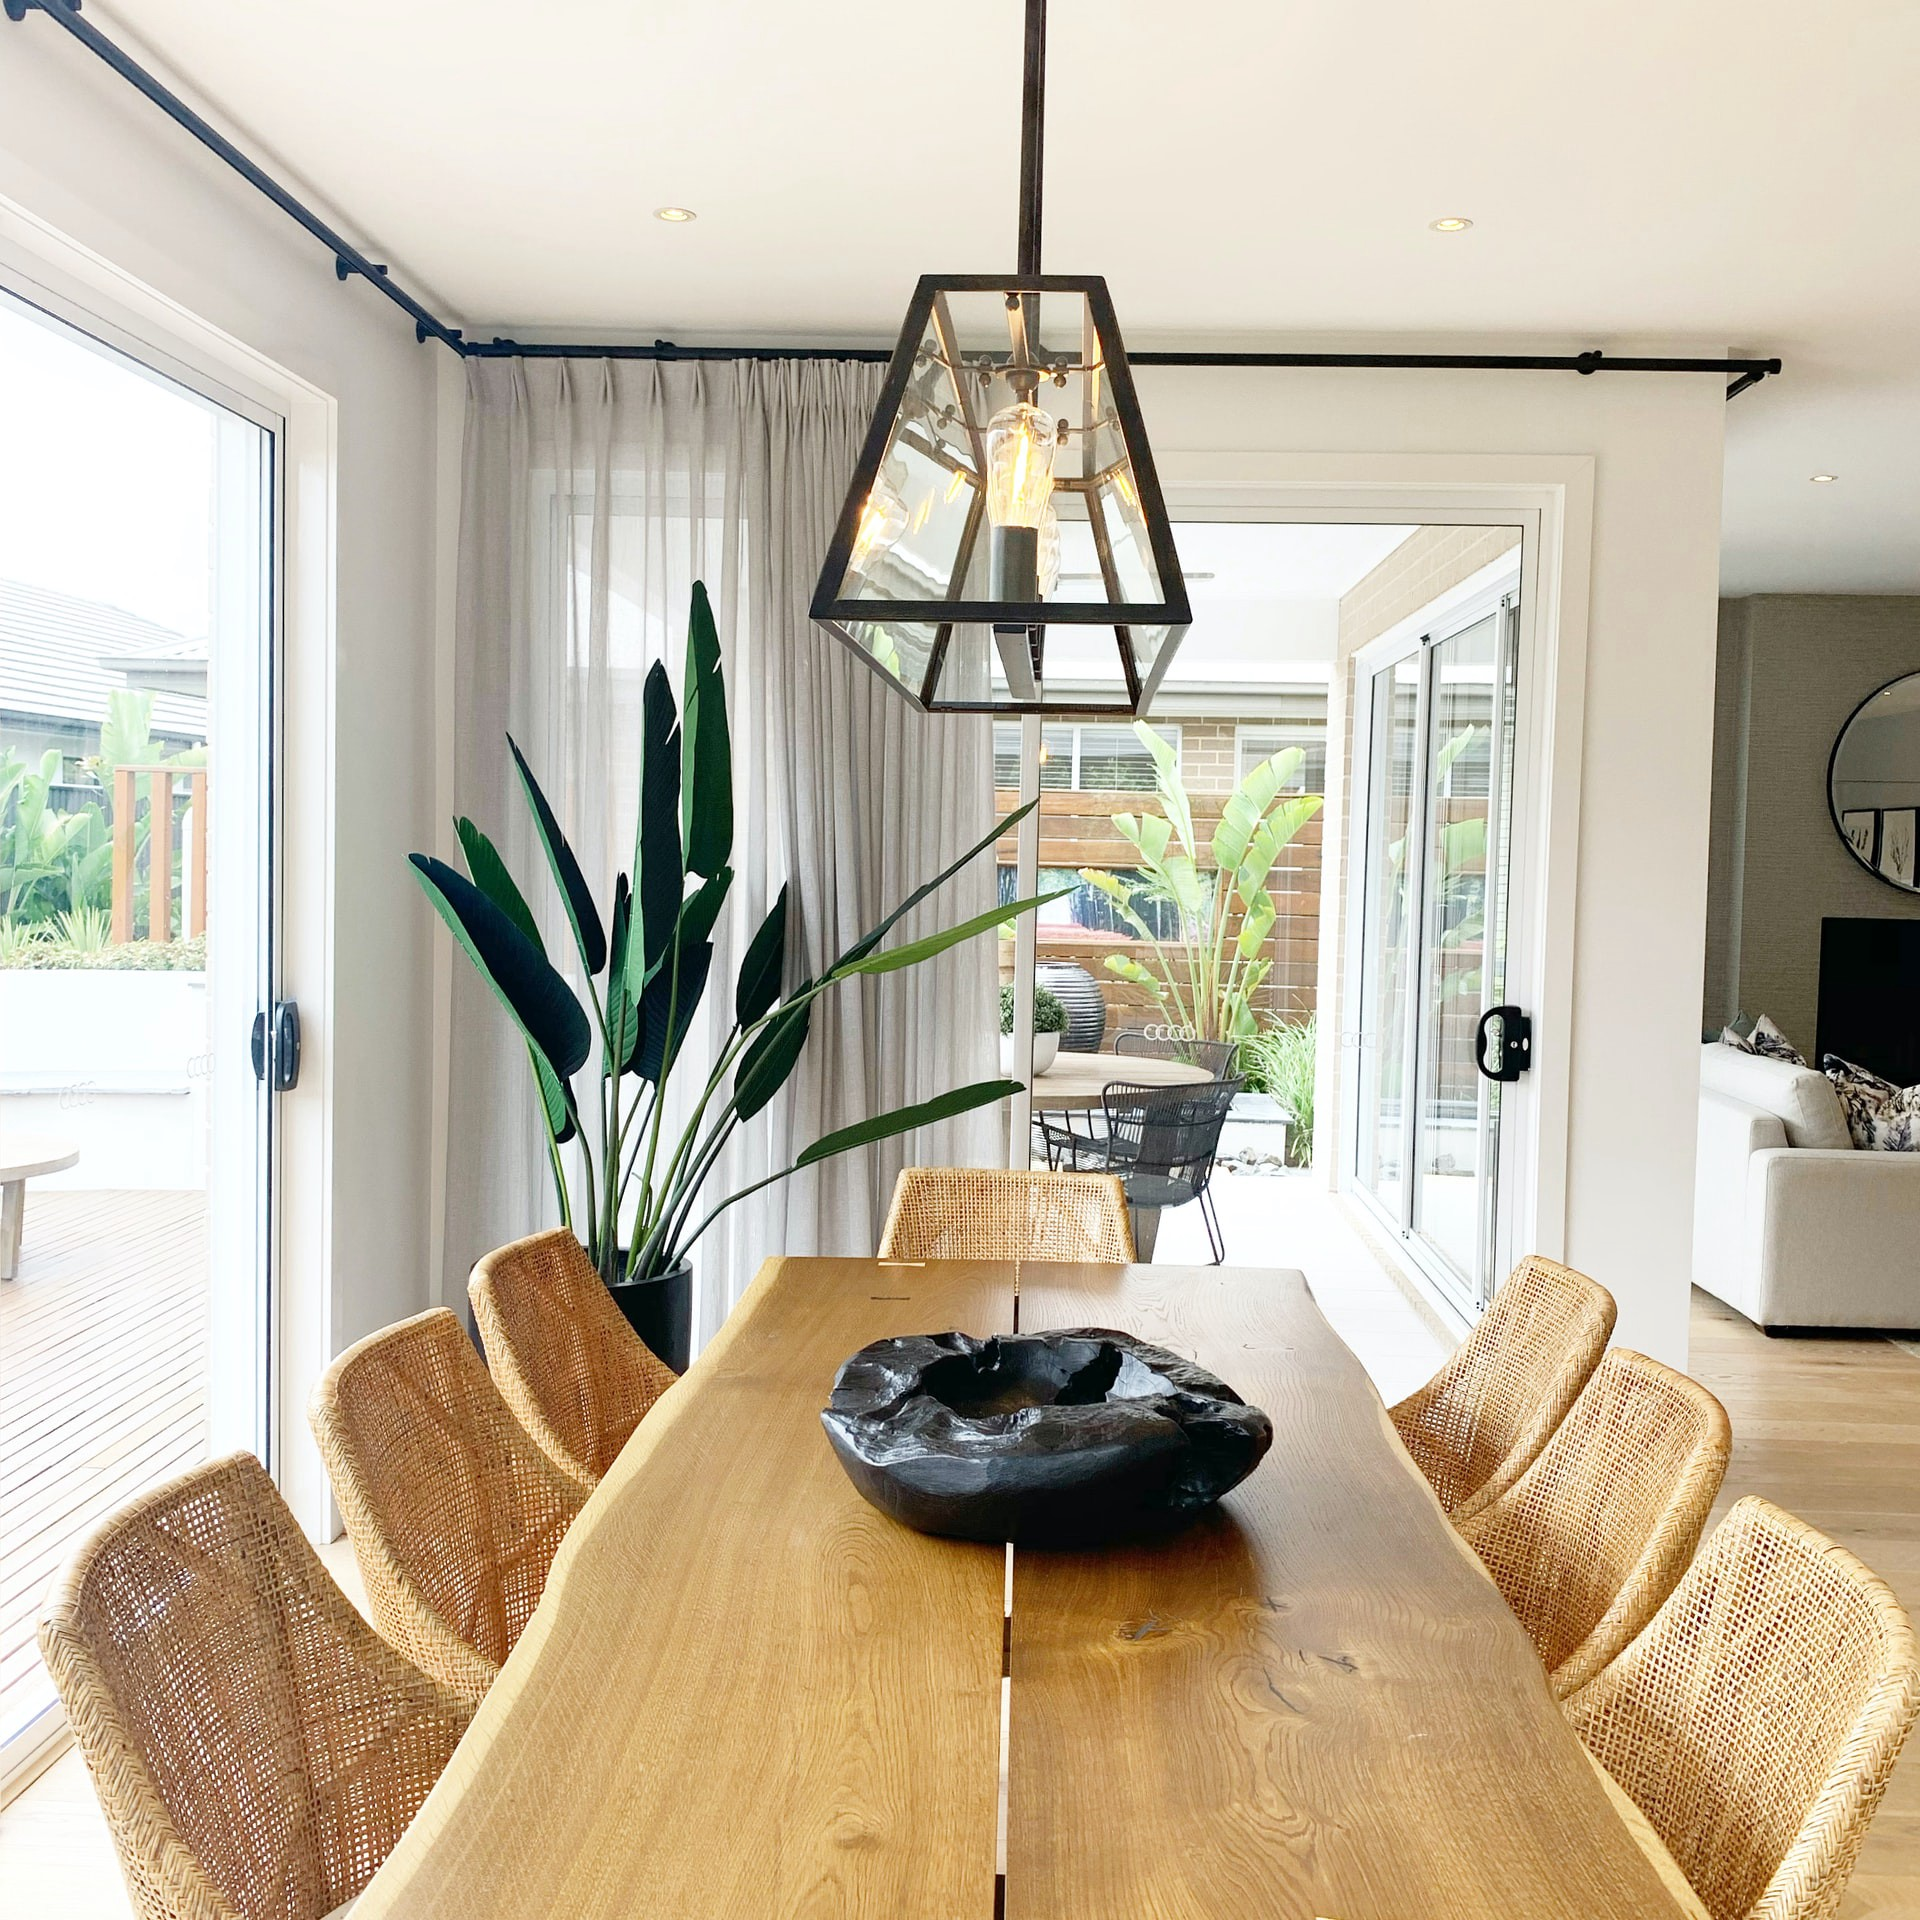 Wooden dining table with modern light fixture